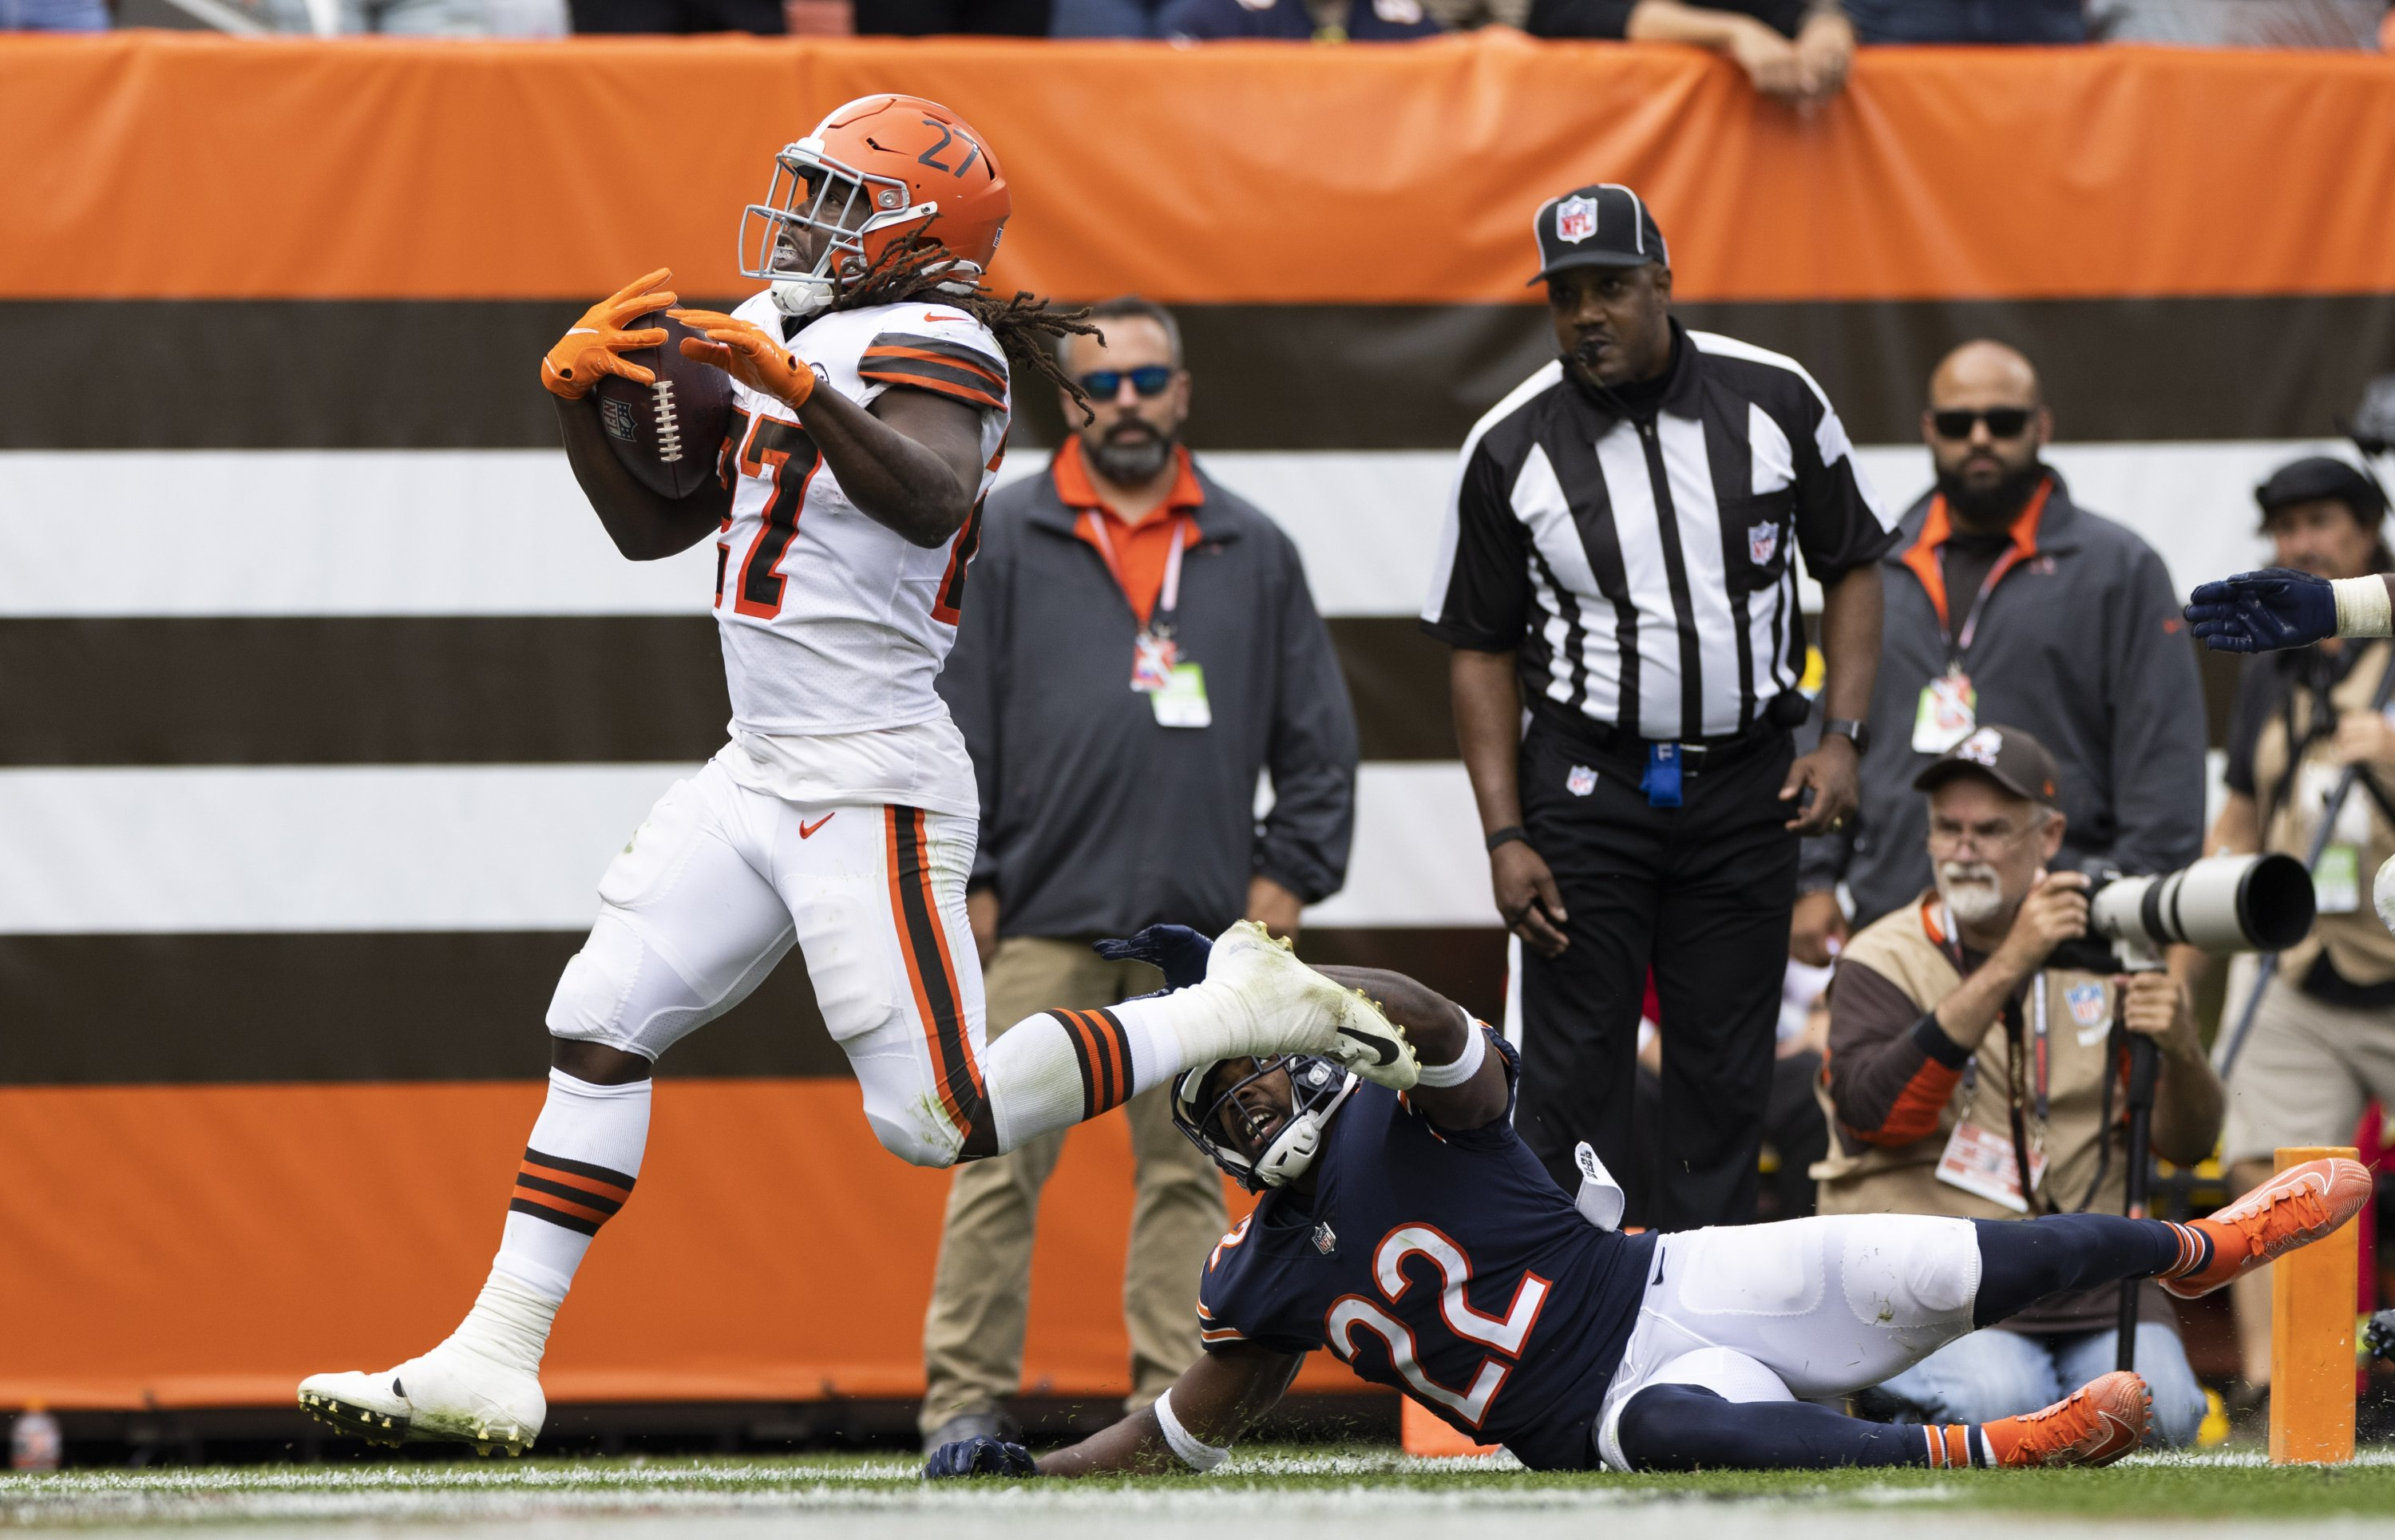 Cleveland Browns running back Kareem Hunt (27) runs the ball past Chicago Bears cornerback Kindle Vildor (22) into the end zone for a touchdown during the fourth quarter at FirstEnergy Stadium, Cleveland, Ohio, U.S., Sept. 26, 2021. (Scott Galvin-USA TODAY Sports via Reuters)